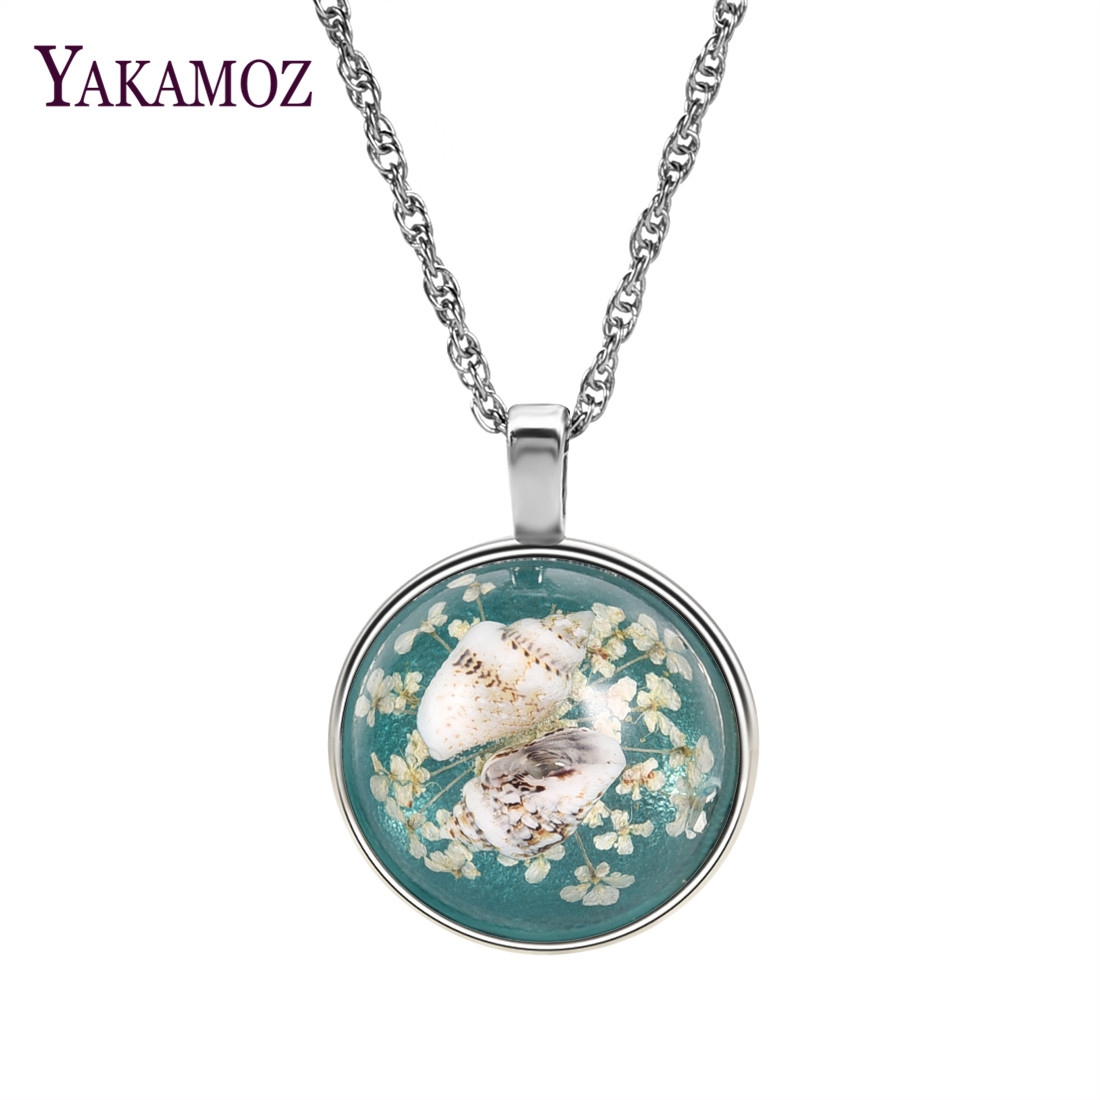 Handmade Starfish Pendant Necklace Resin Blue Choker For Women Gift Natural Dried Flower Conch Jewelry Christmas Gifts